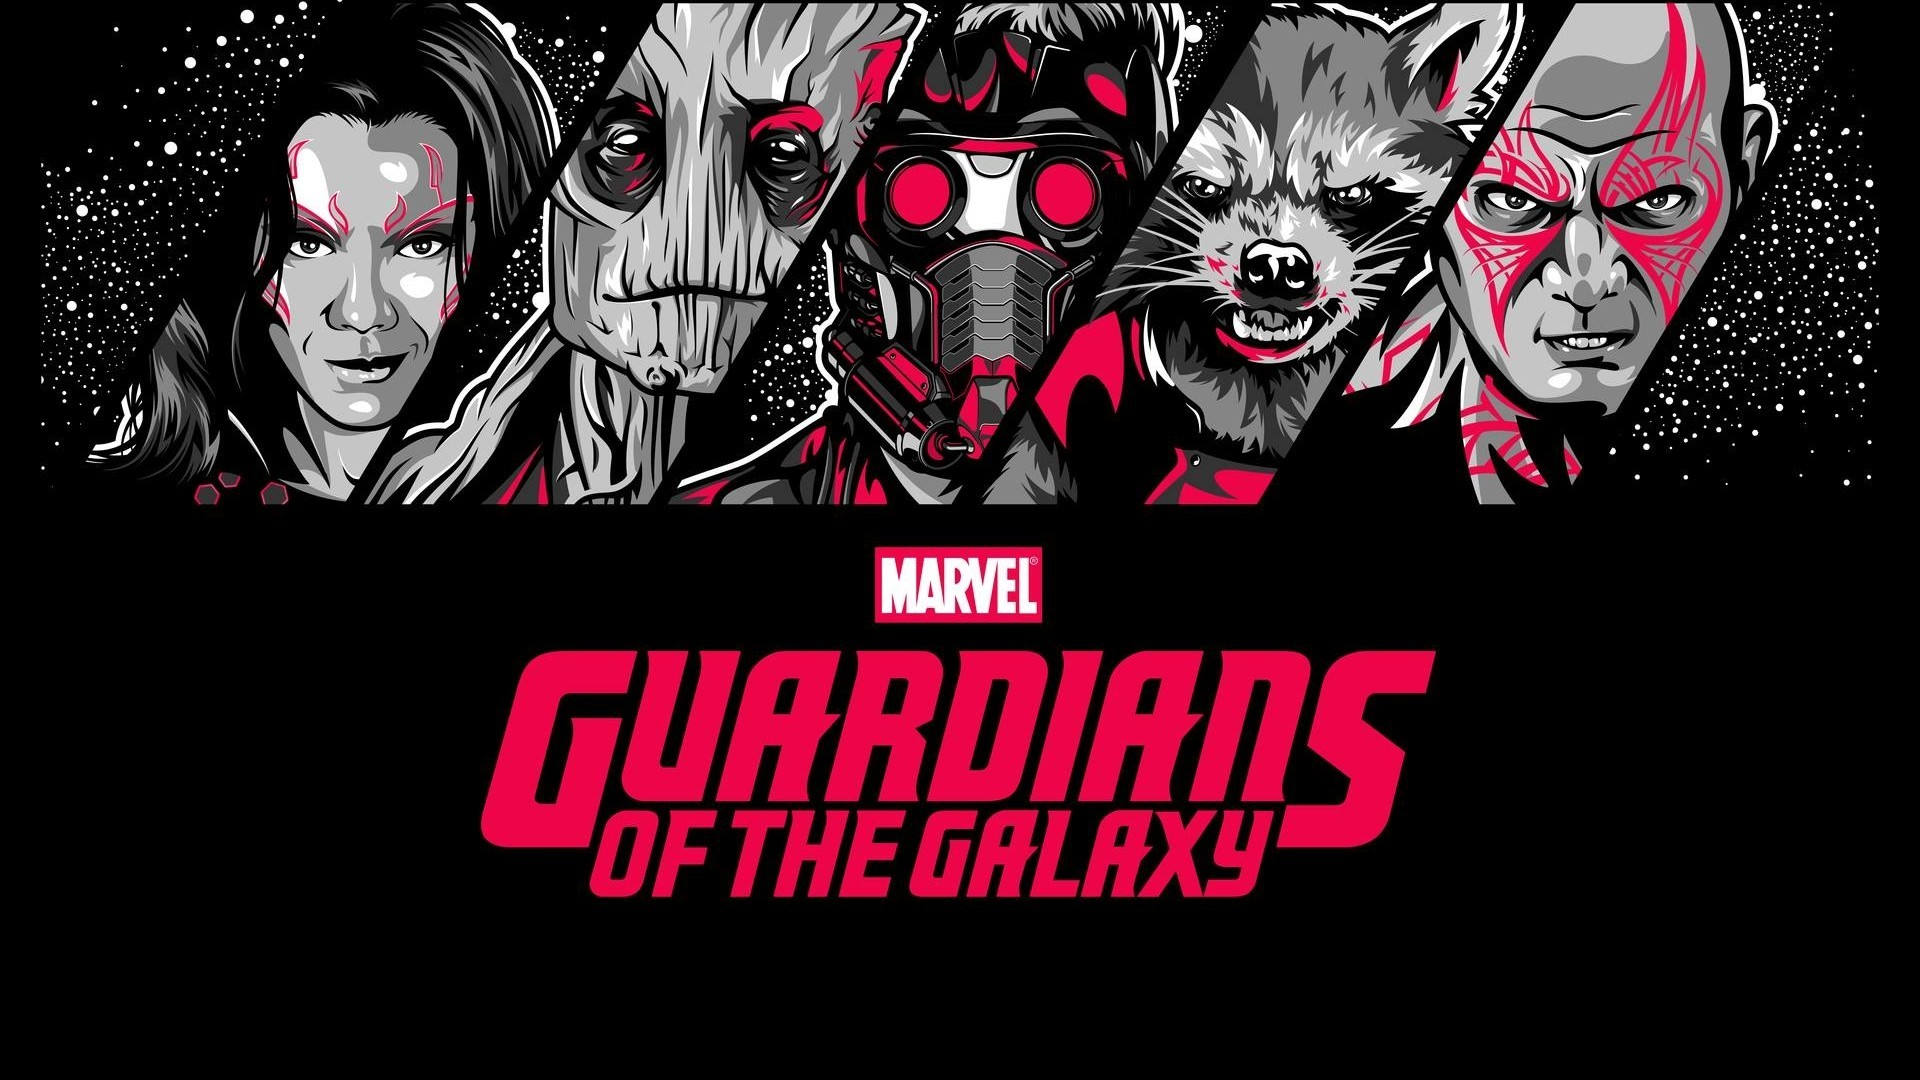 Top Wallpaper Marvel Star Lord - 1050302-download-star-lord-wallpapers-1920x1080-for-iphone-5s  HD_934072.jpg